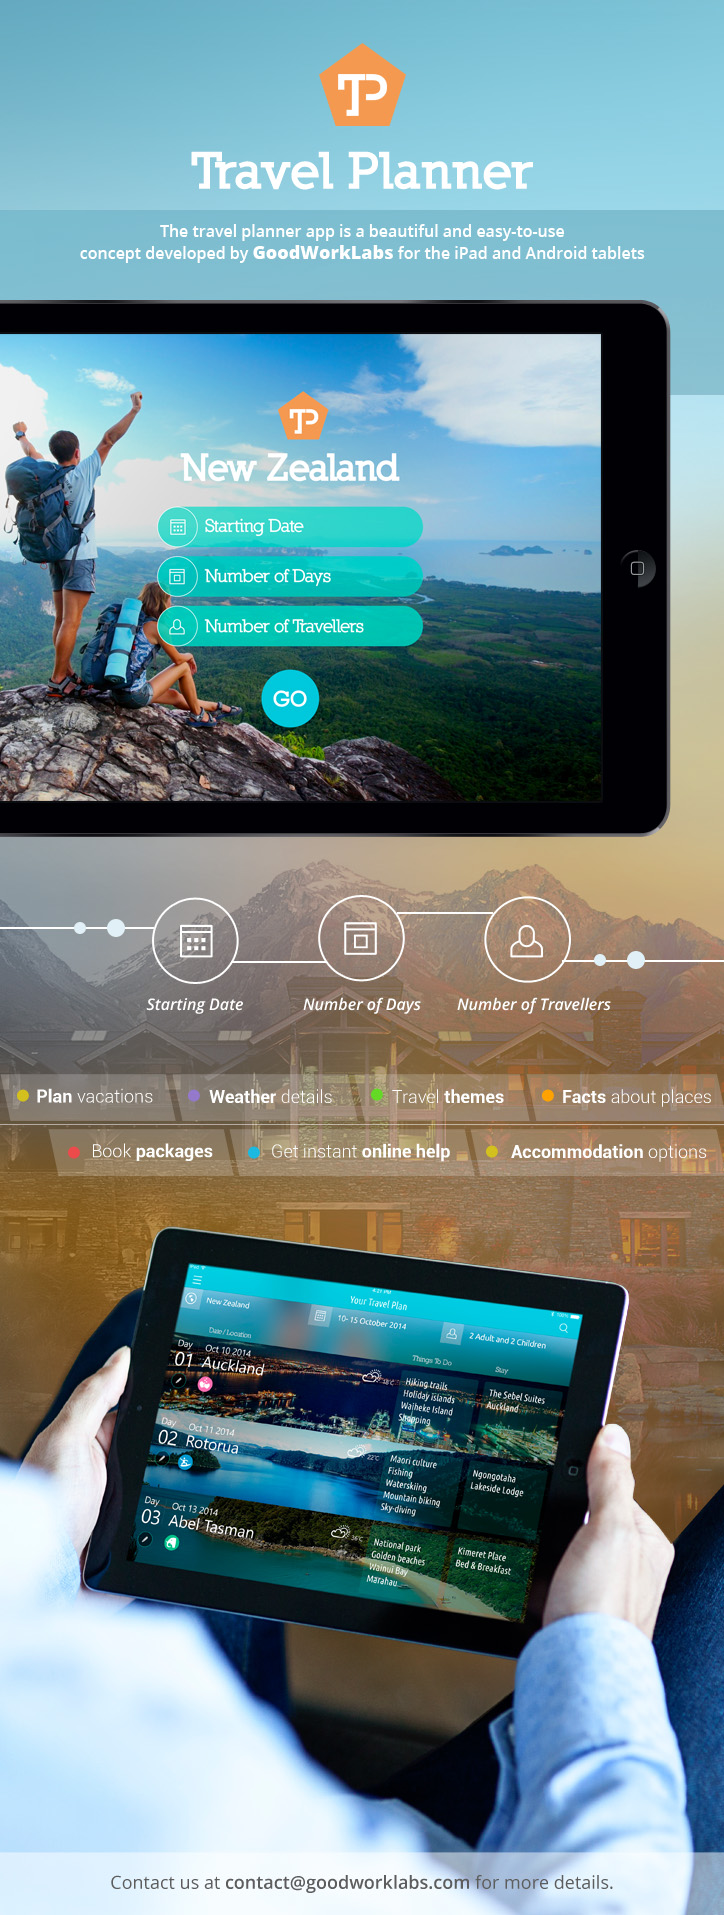 travel-planner-app-design-ux-ipad-android